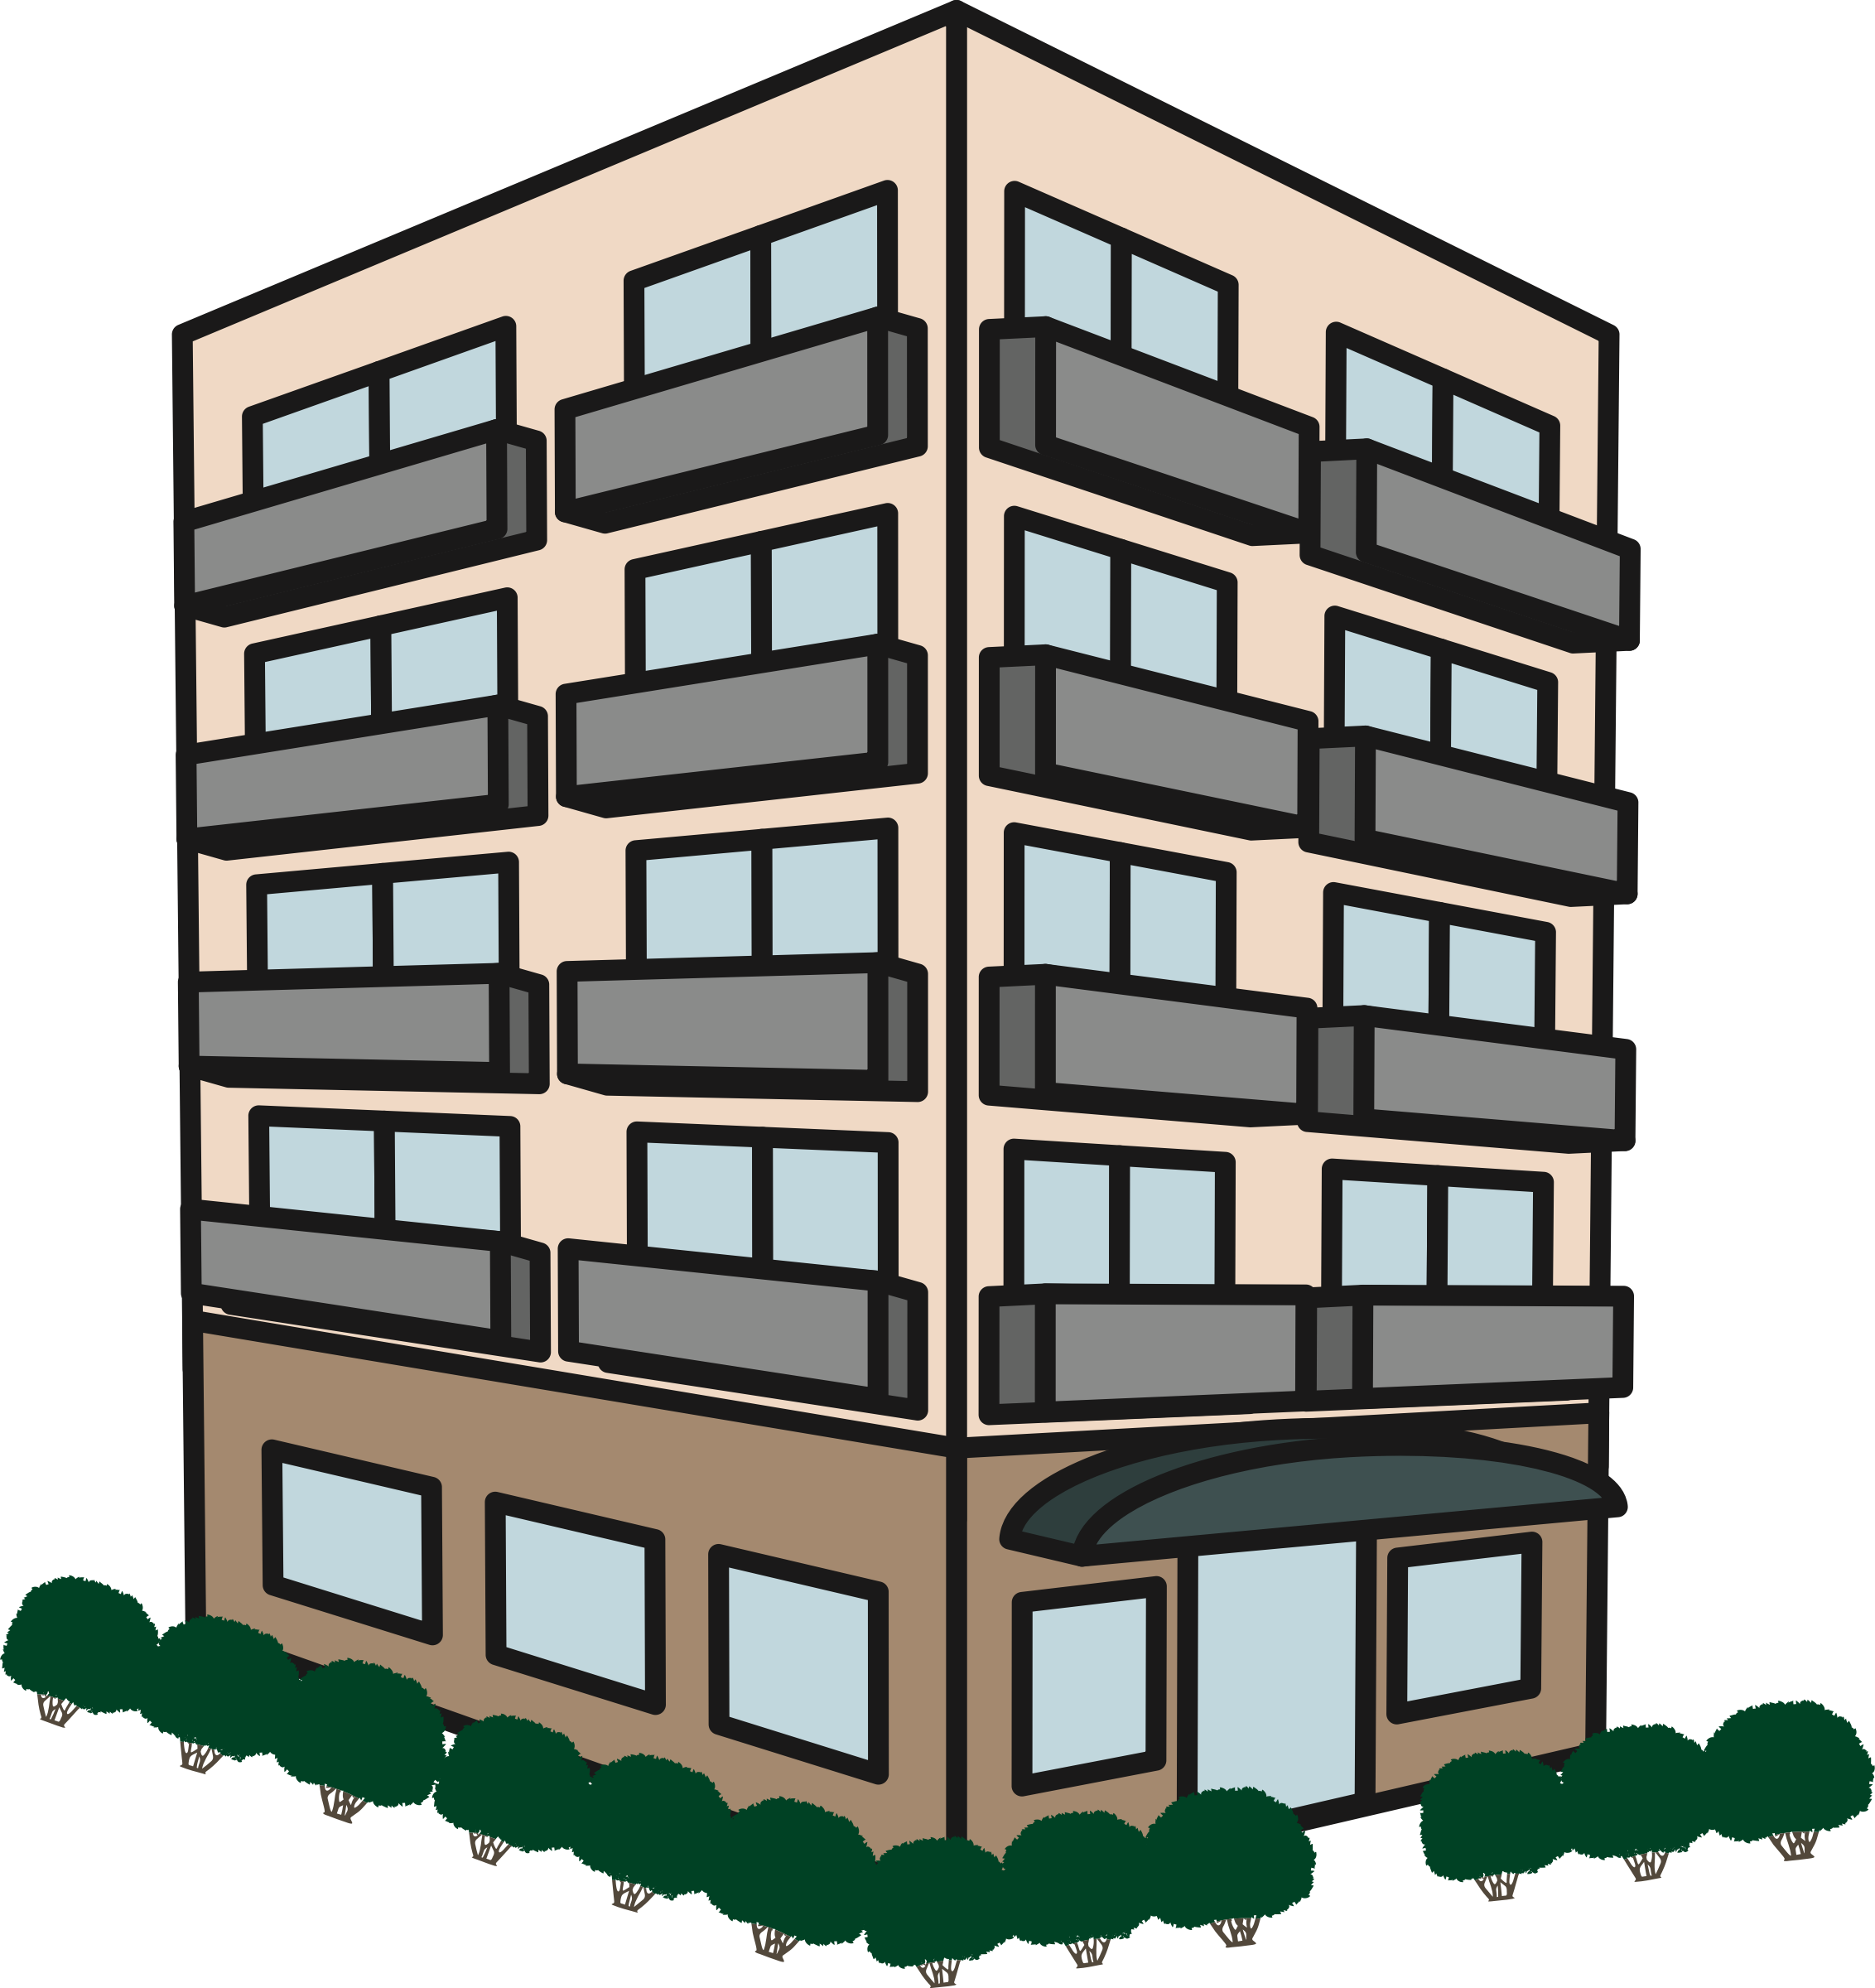 banner Building big image png. Apartment clipart.